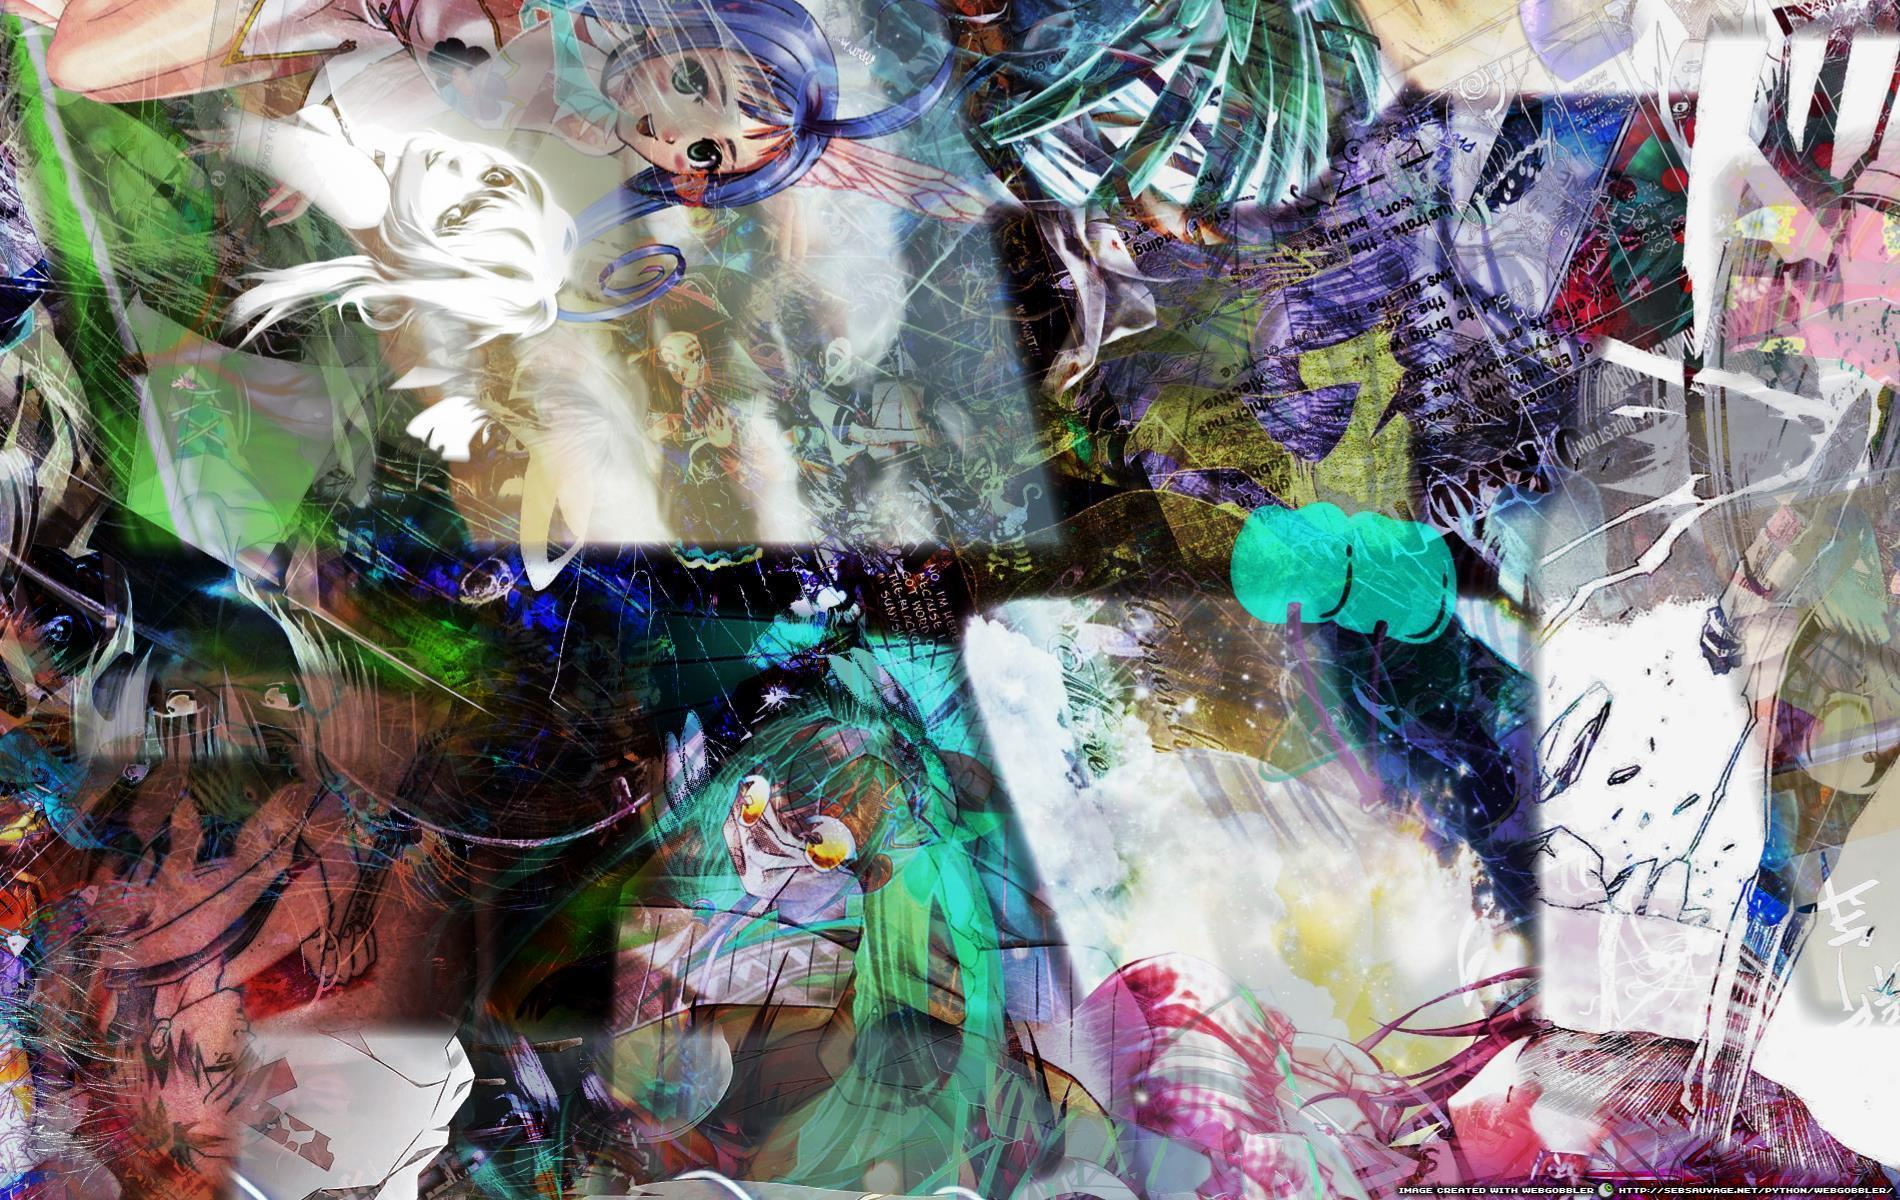 webgobbler_faire-des-collages-sur-internet_1